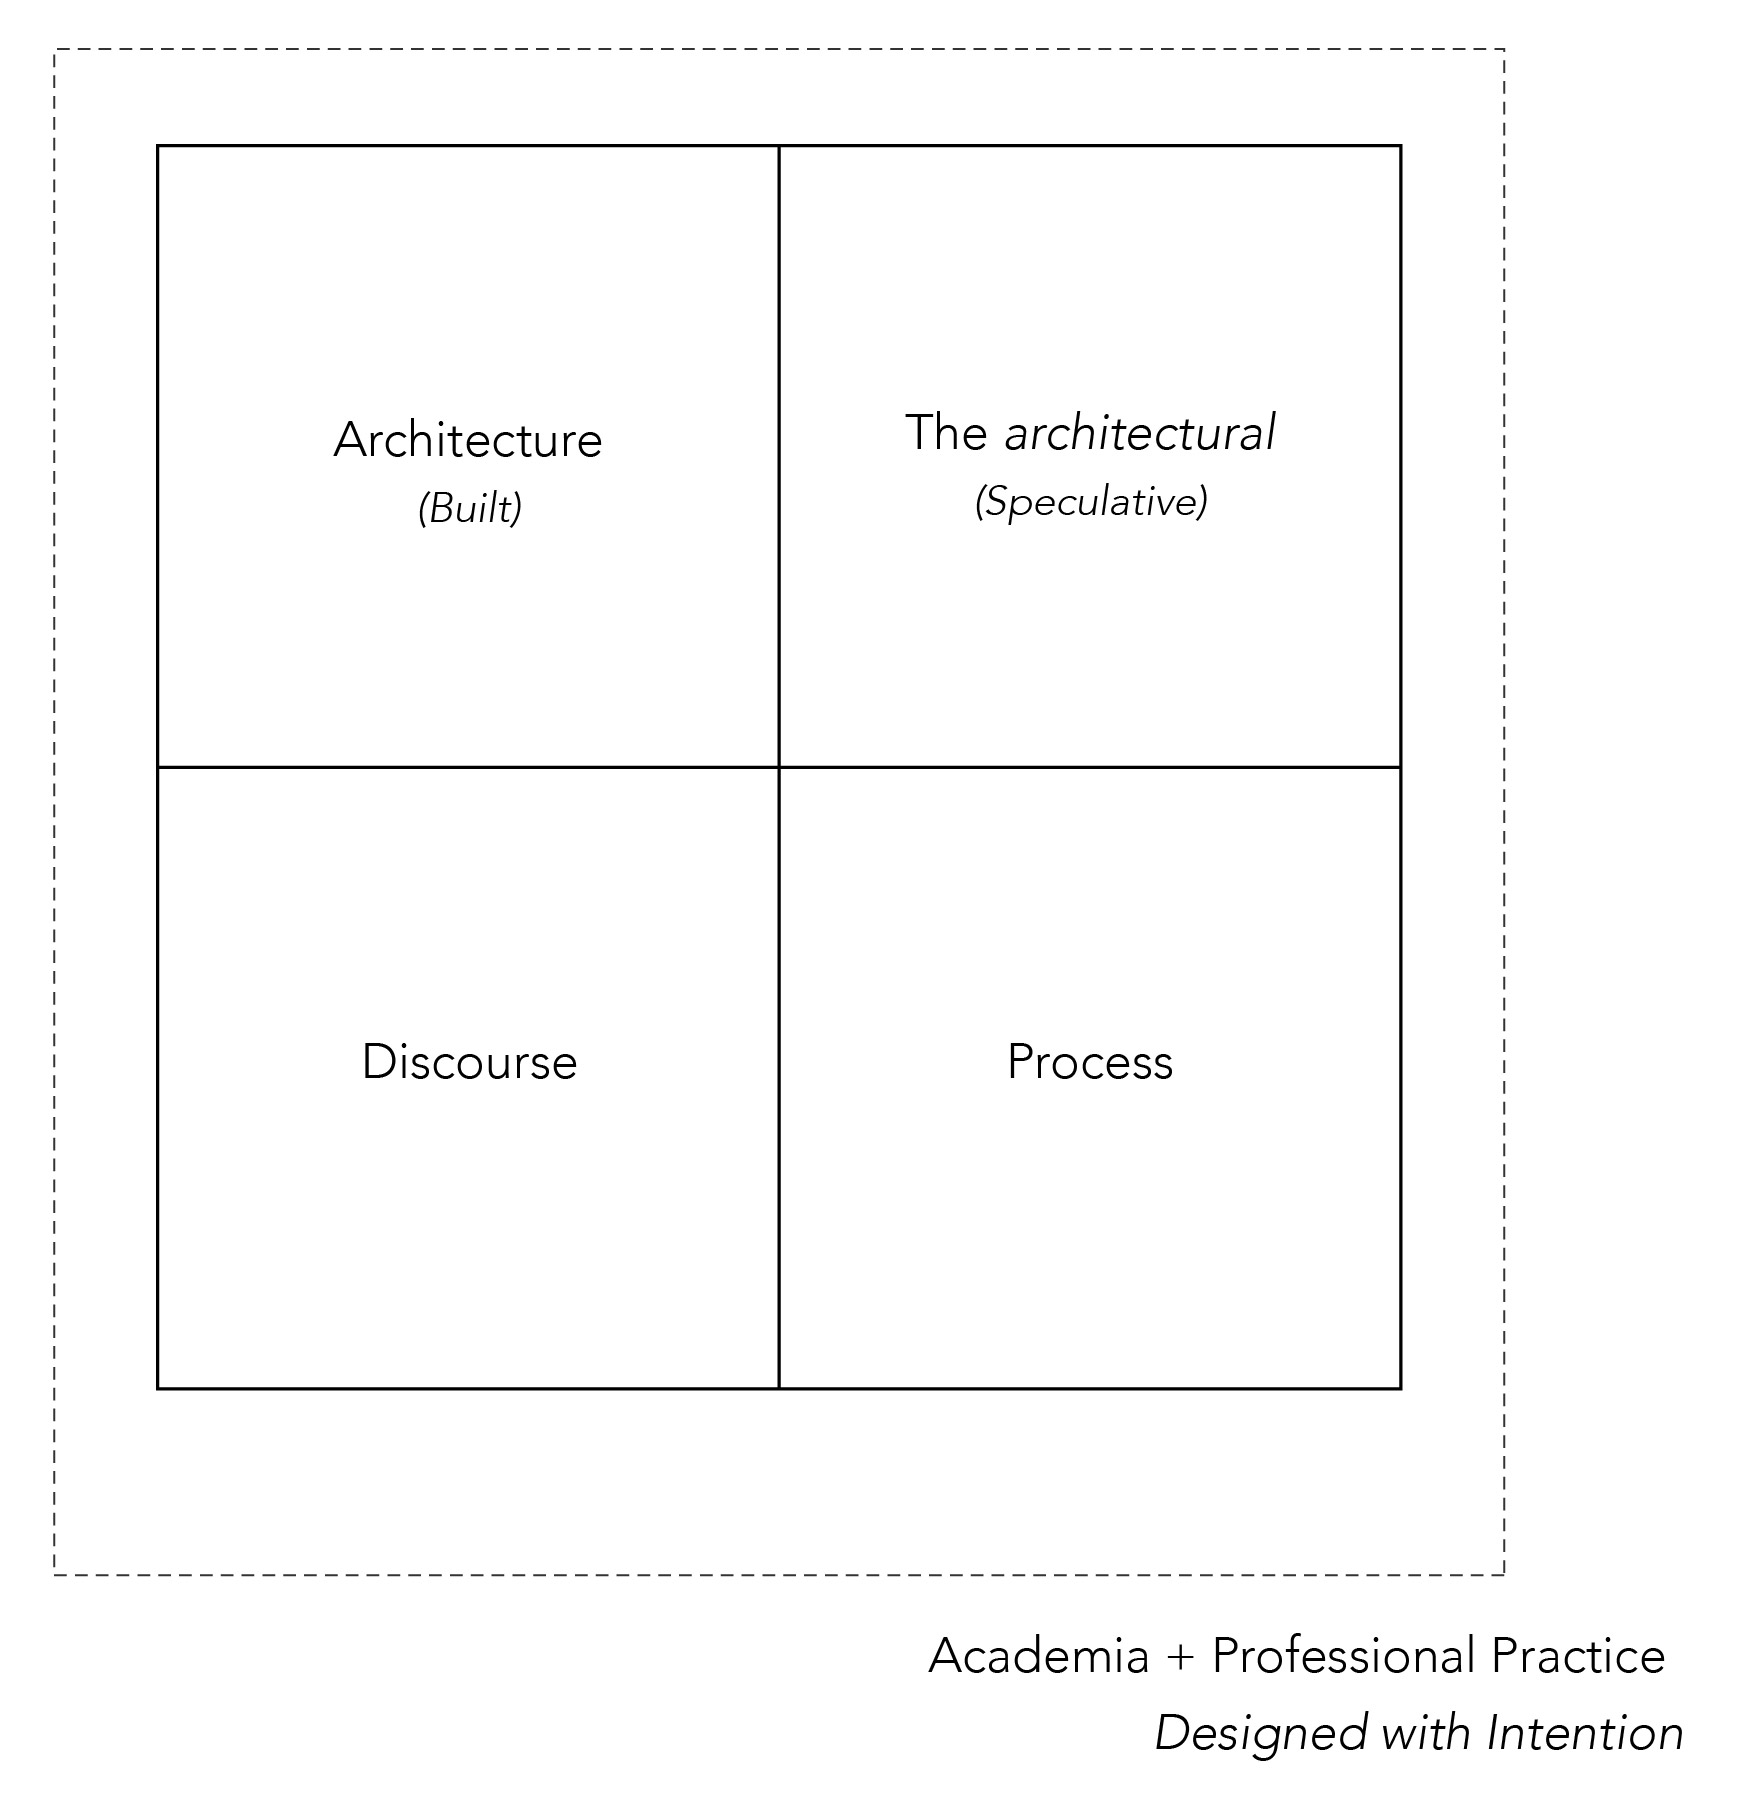 Figure 1 - Regimes of practice within the discipline of architecture